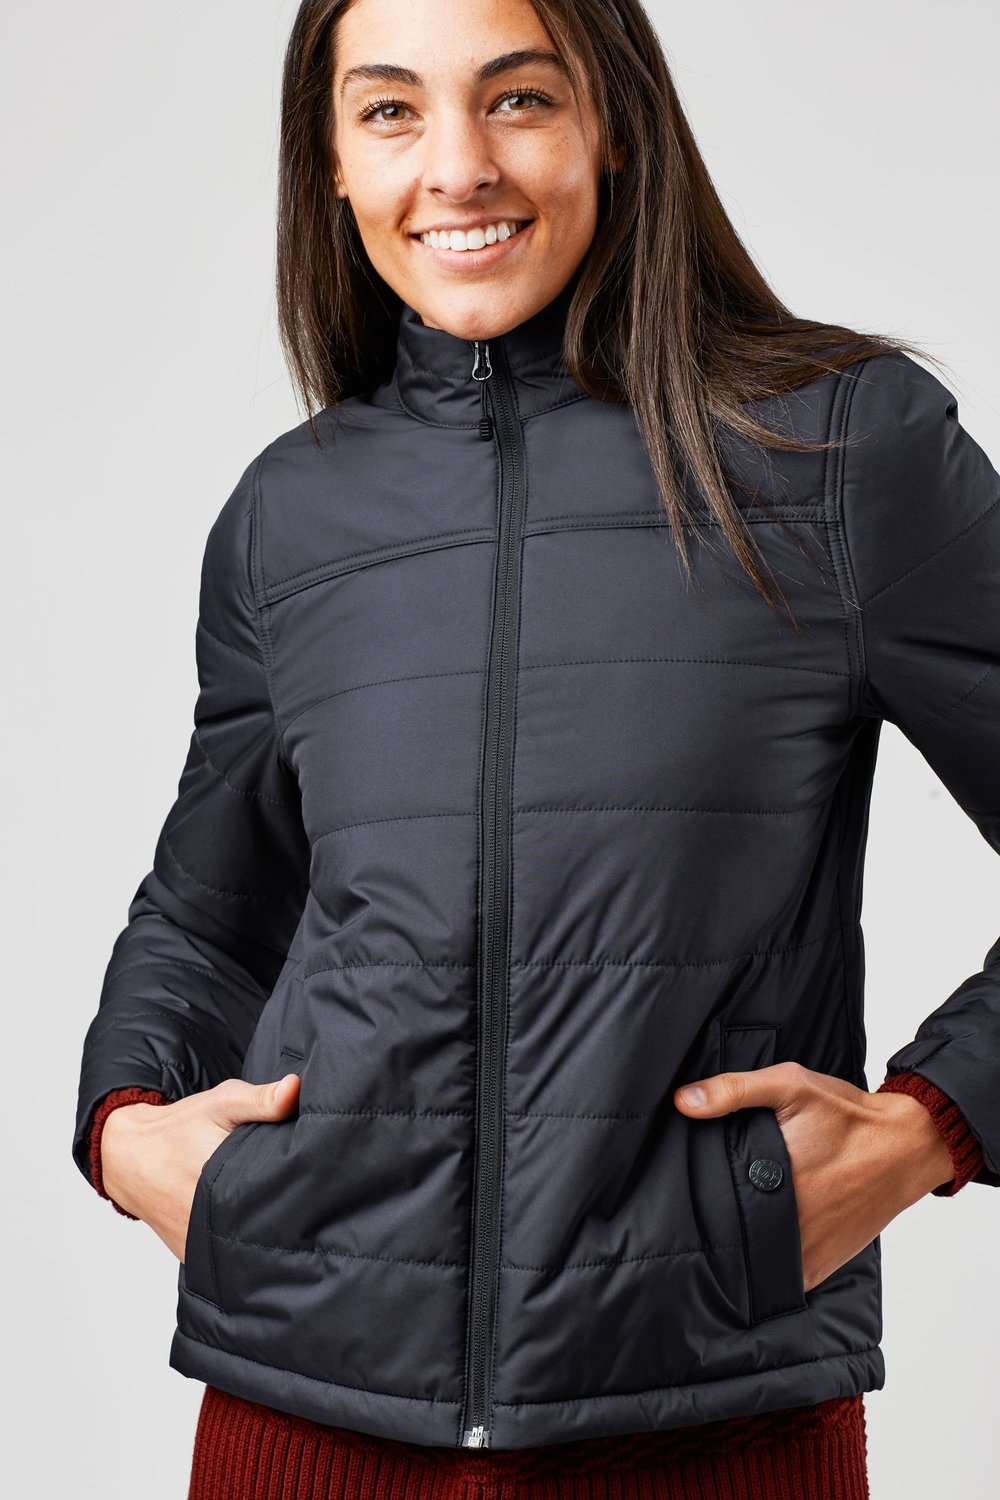 This thin jacket from United By Blue doesn't look like it can keep you warm in single-digits, but it's unique bison fiber insulation can handle it!